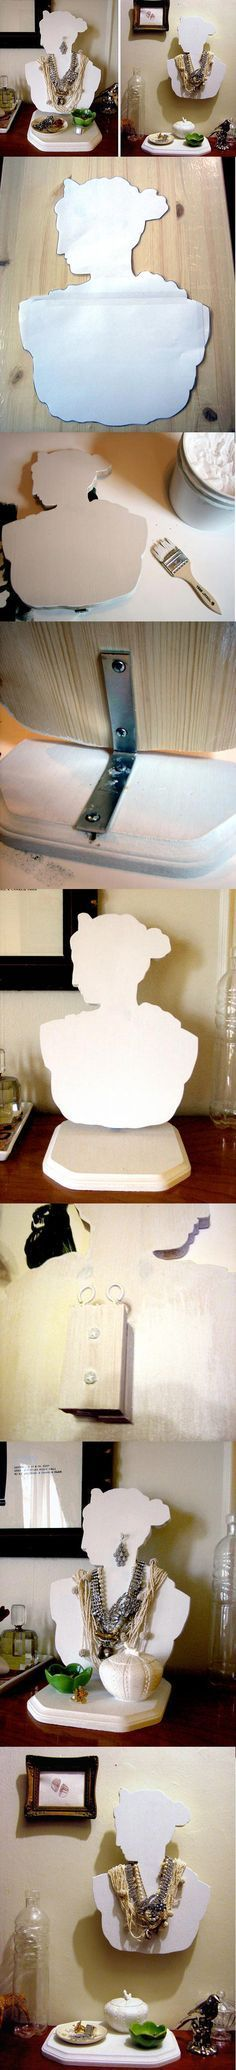 Trace a silhouette onto a board, cut it and make your own jewelry stand! Hmmmm...if you didn't have access to special tools, couldn't you cut 3 layers of thick cardboard, stack and glue them? This would make them sturdy enough! Then you could decoupage the finished product....